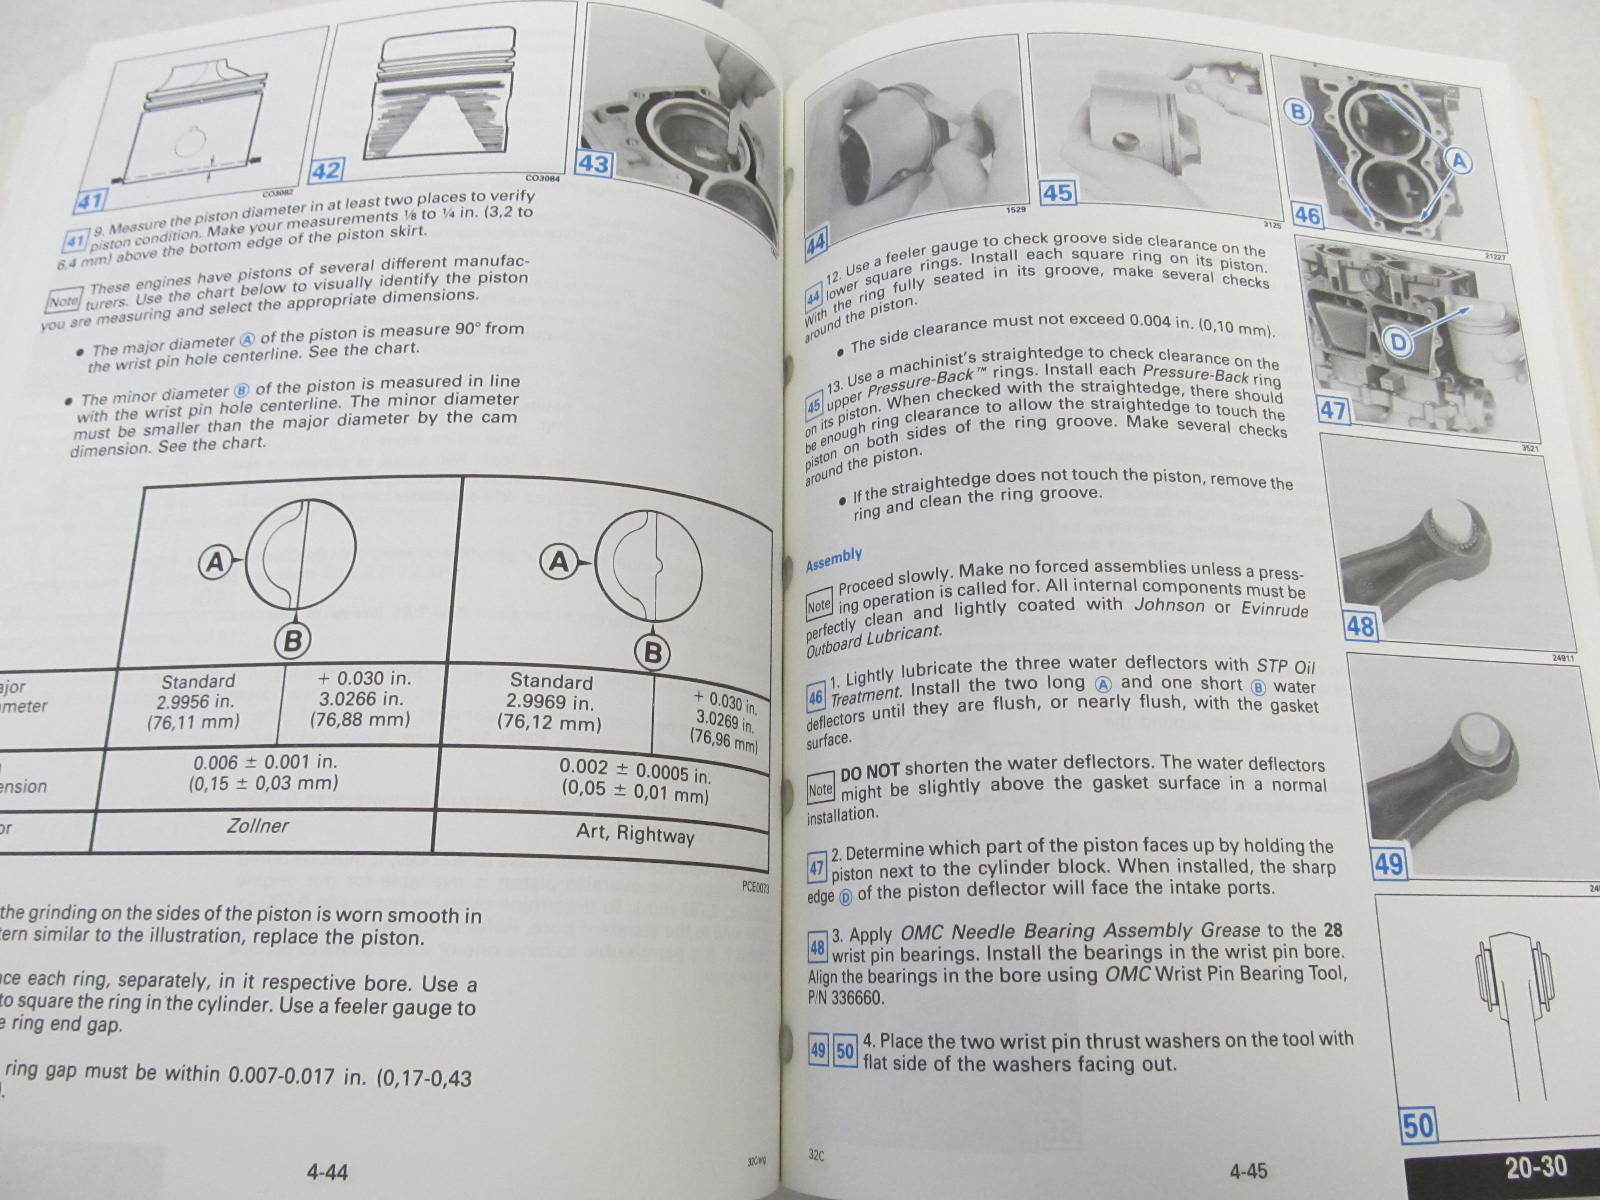 Johnson Manual Pdf 30 Hp water Pump Replacement cost